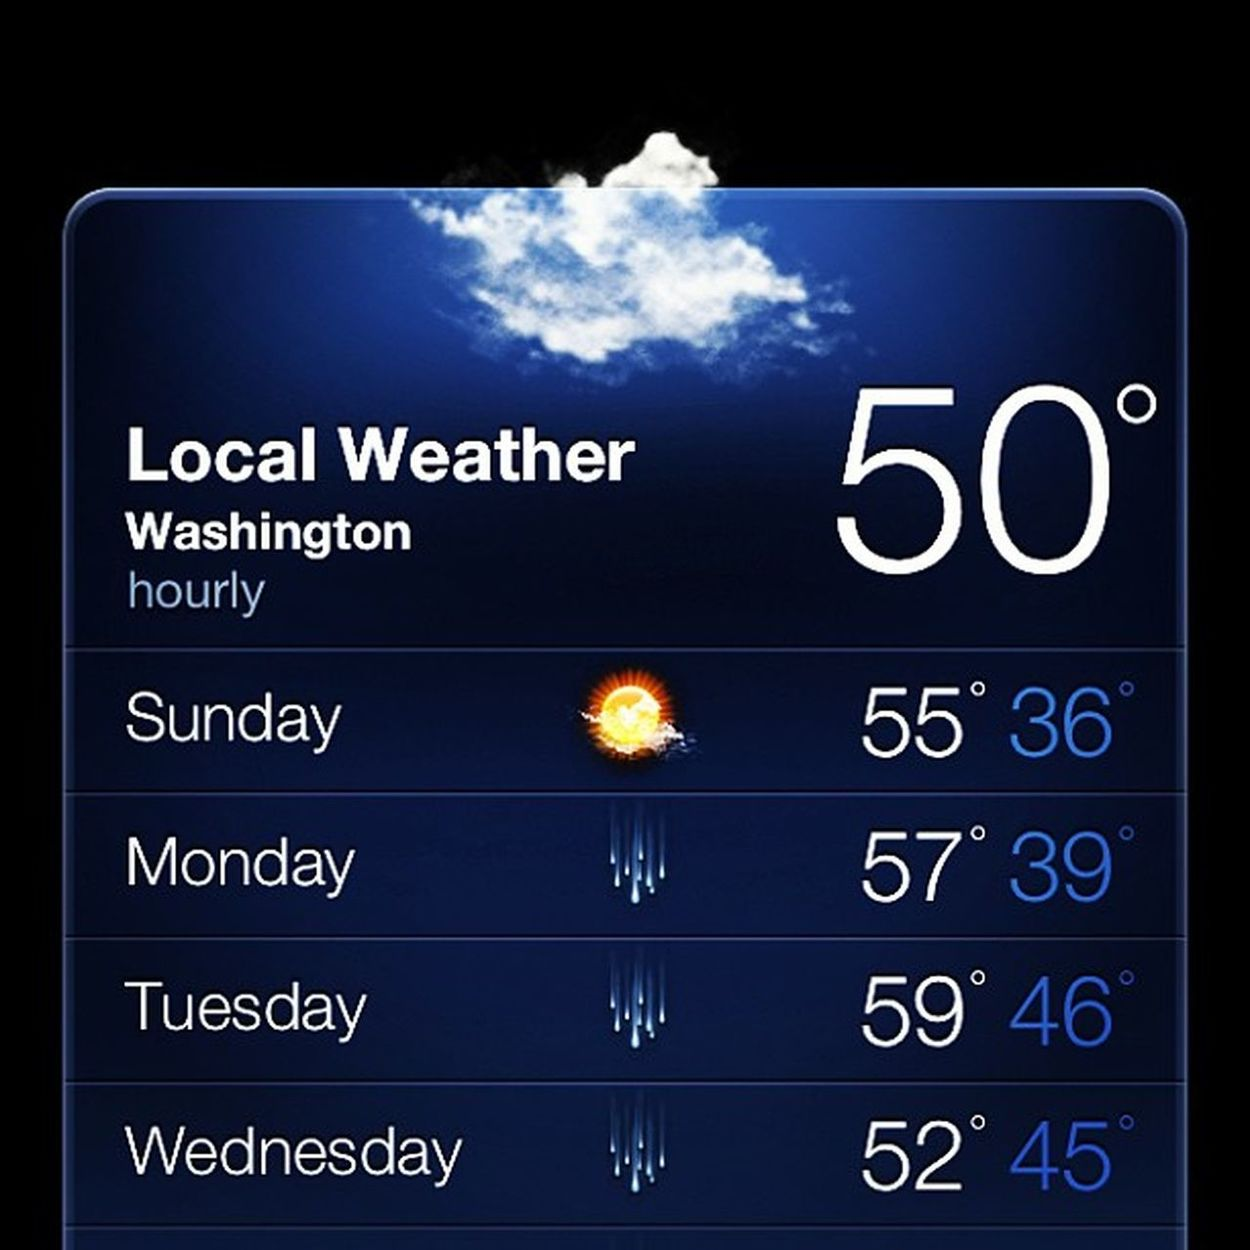 Even though it may rain my windows are gonna be open!✌In Fifty 's Yay Feelsnice windowsdown and open ahh finally wooo